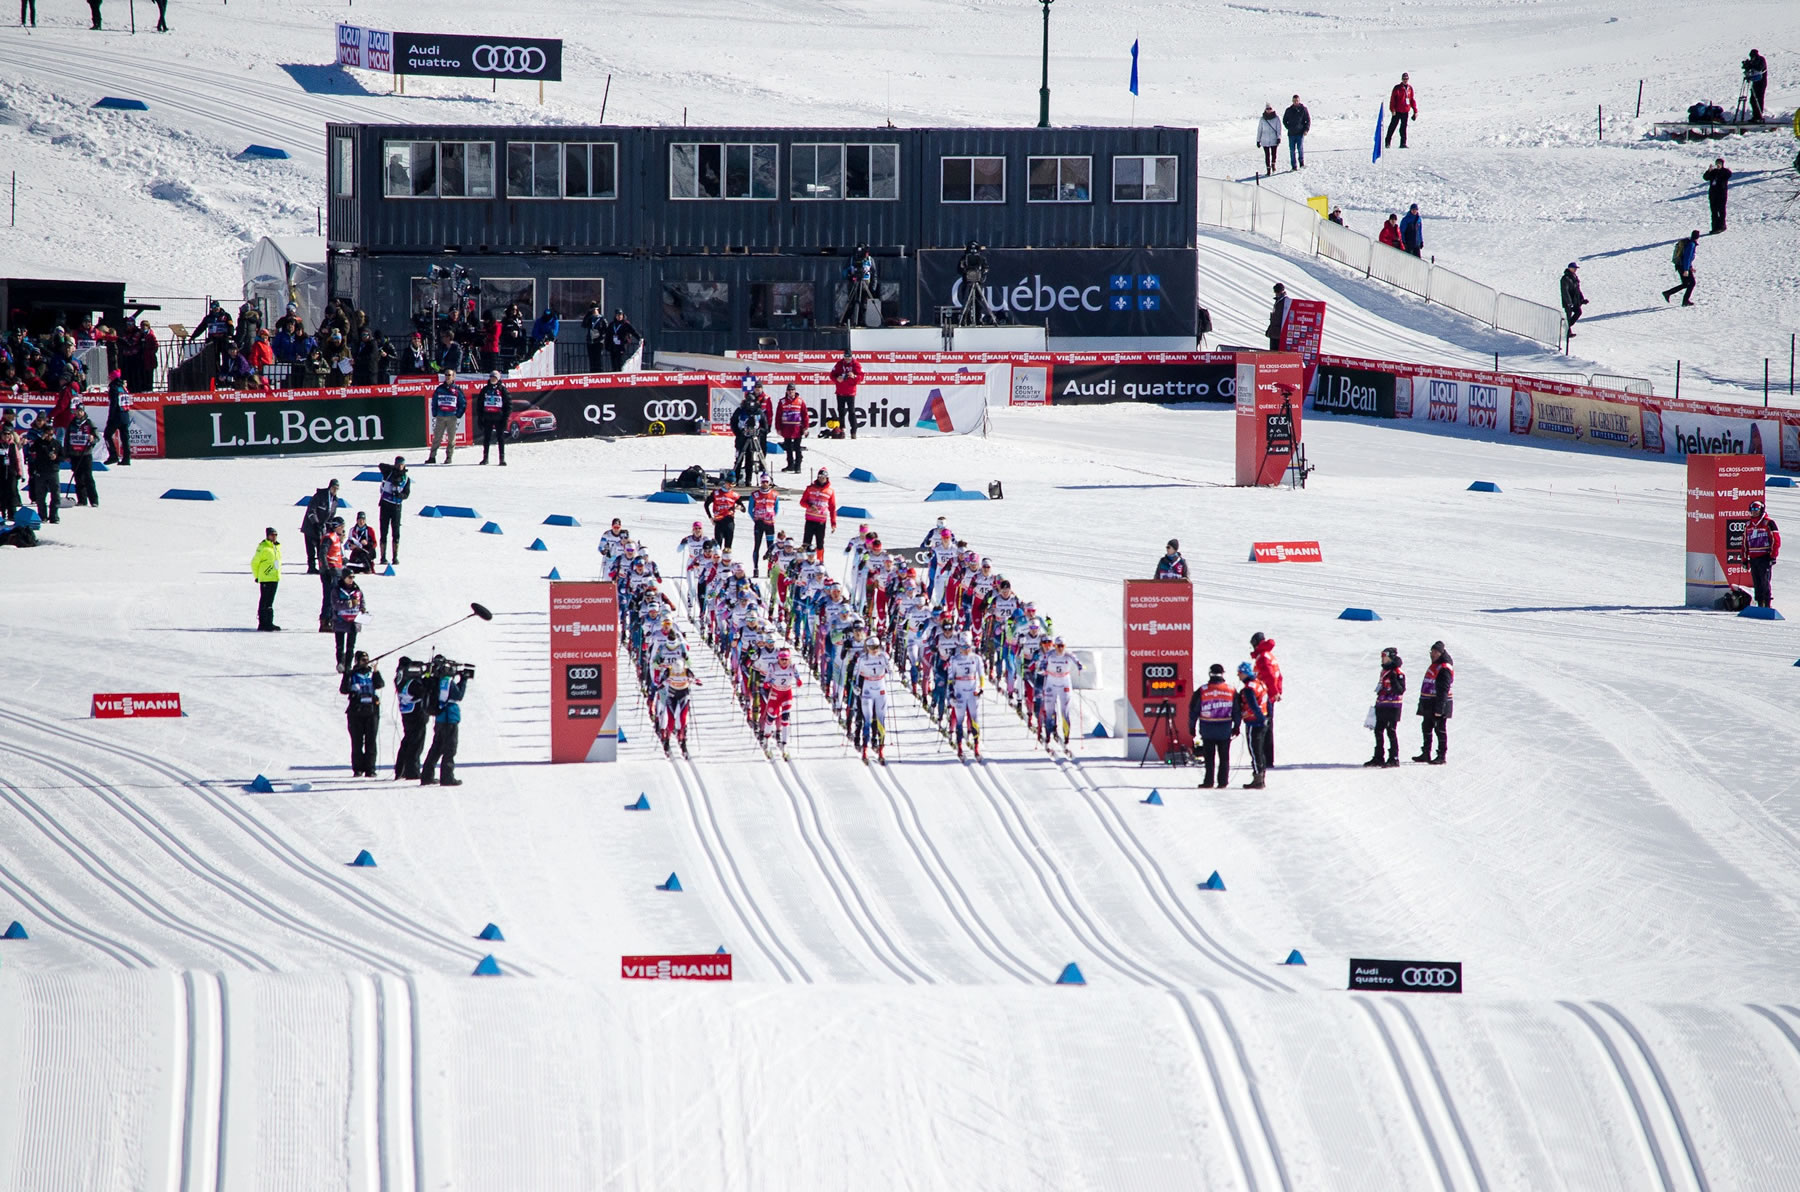 Starting my first World Cup!!! [Photo] Gretchen Powers